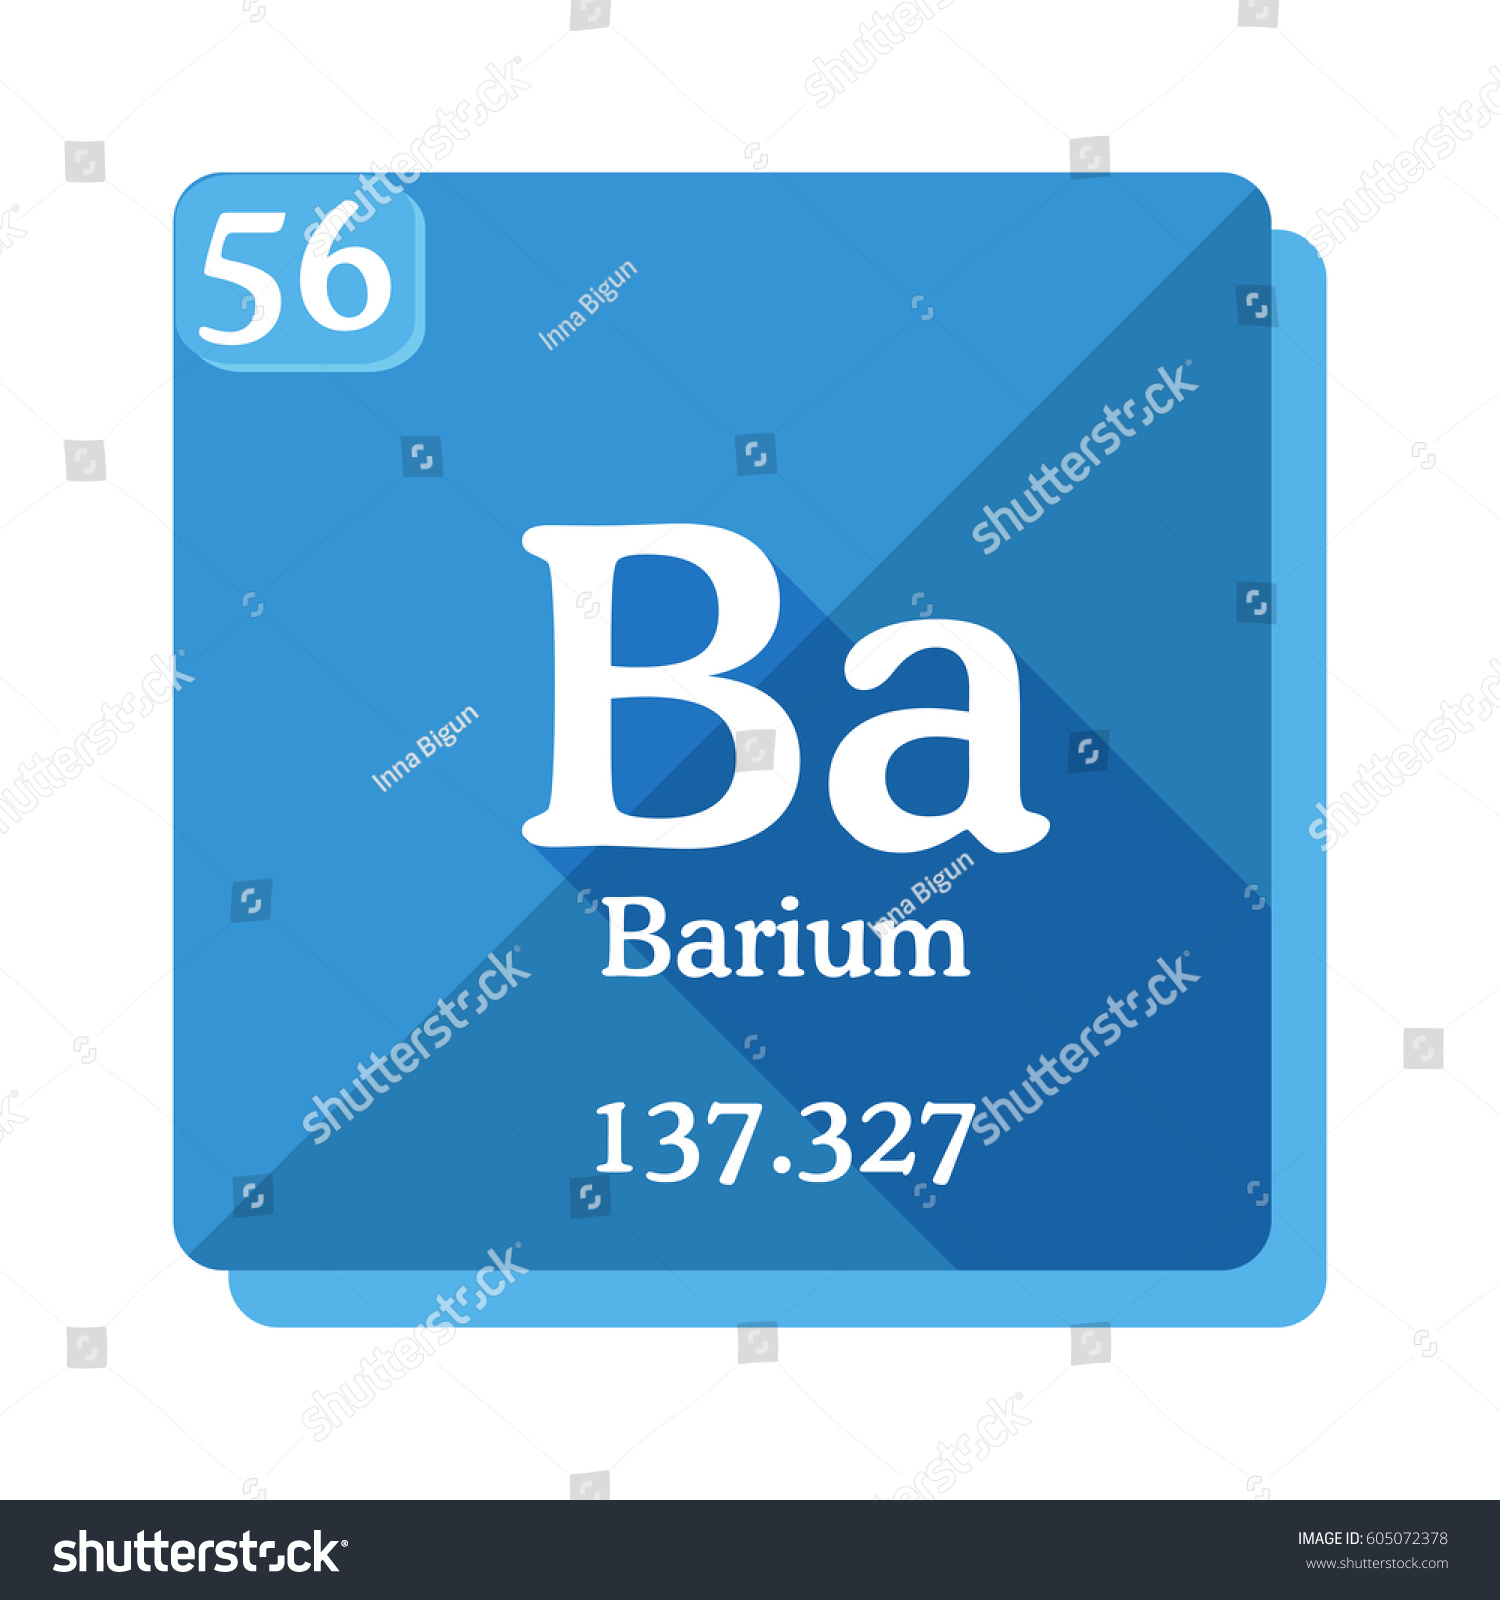 Barium ba element periodic table vector stock vector 605072378 barium ba element of the periodic table vector illustration in flat style gamestrikefo Image collections